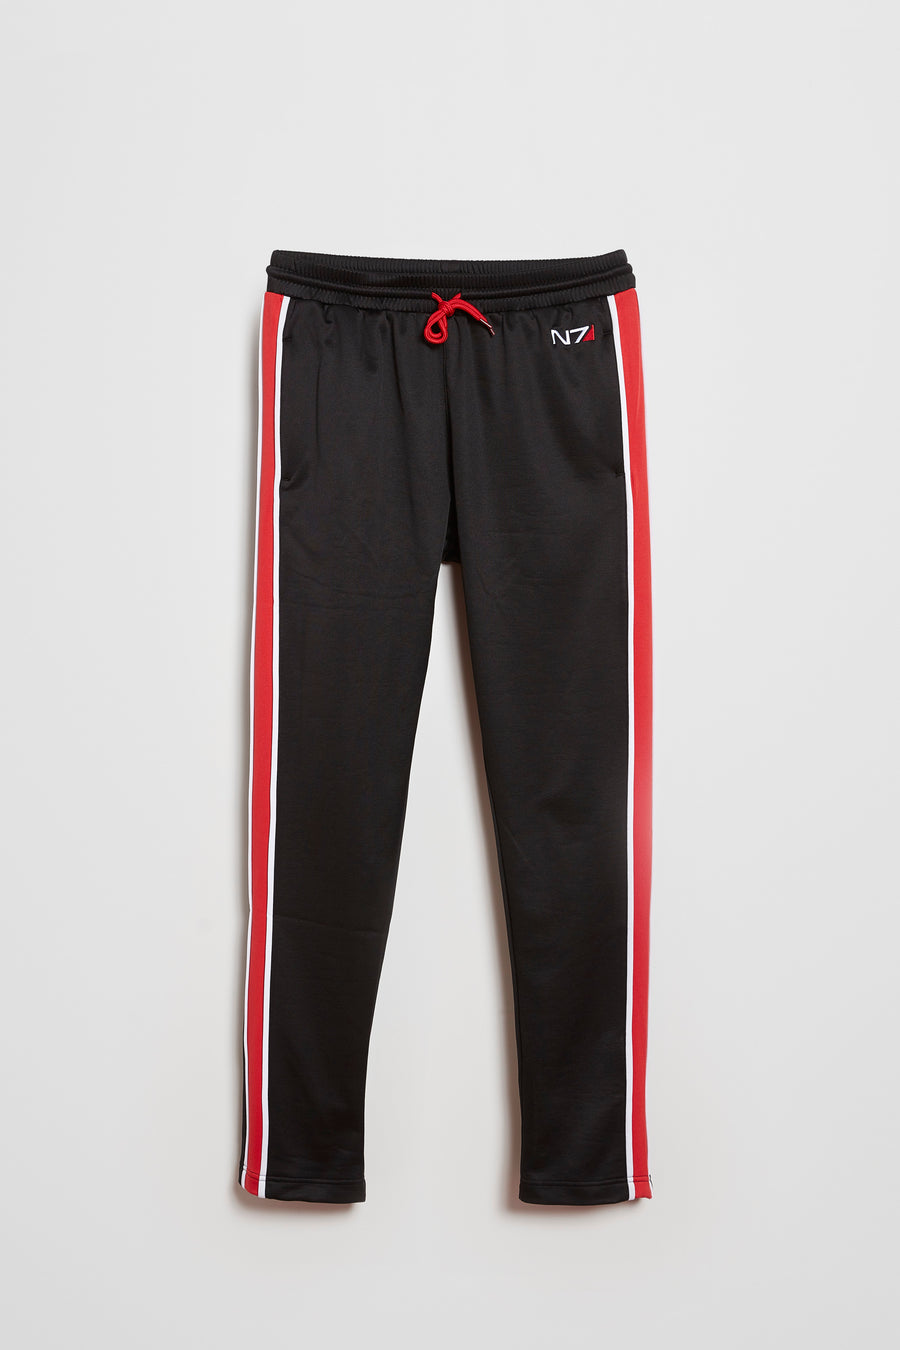 Mass Effect N7 Side Stripe Track Pants